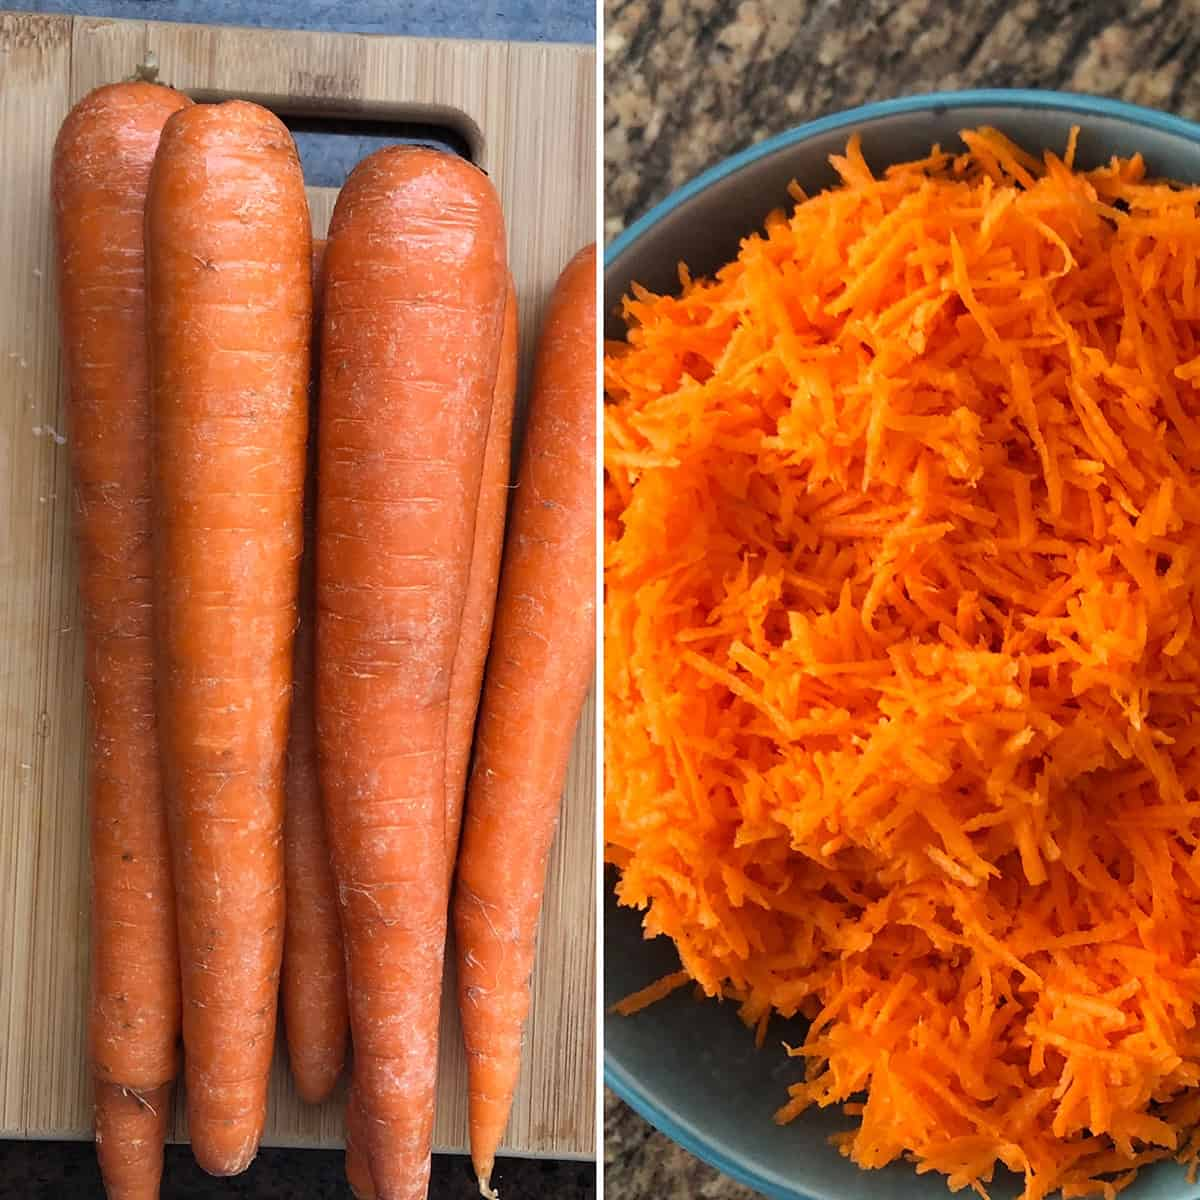 Side by side photos of carrots and finely grated carrots